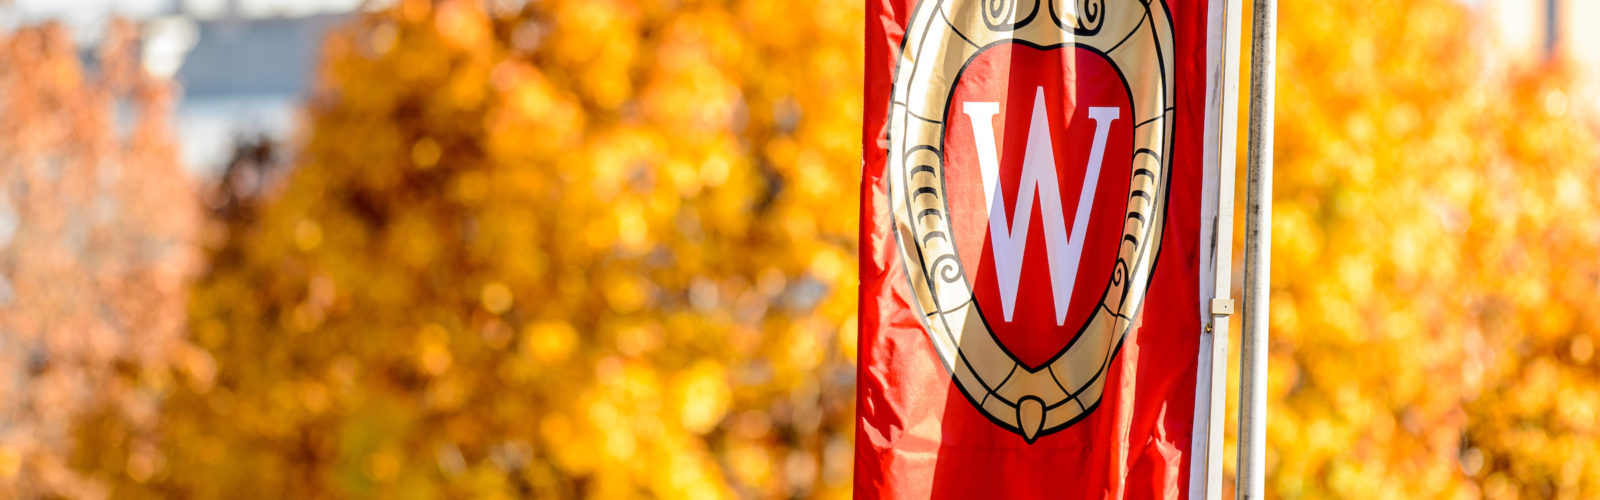 a UW banner in the fall